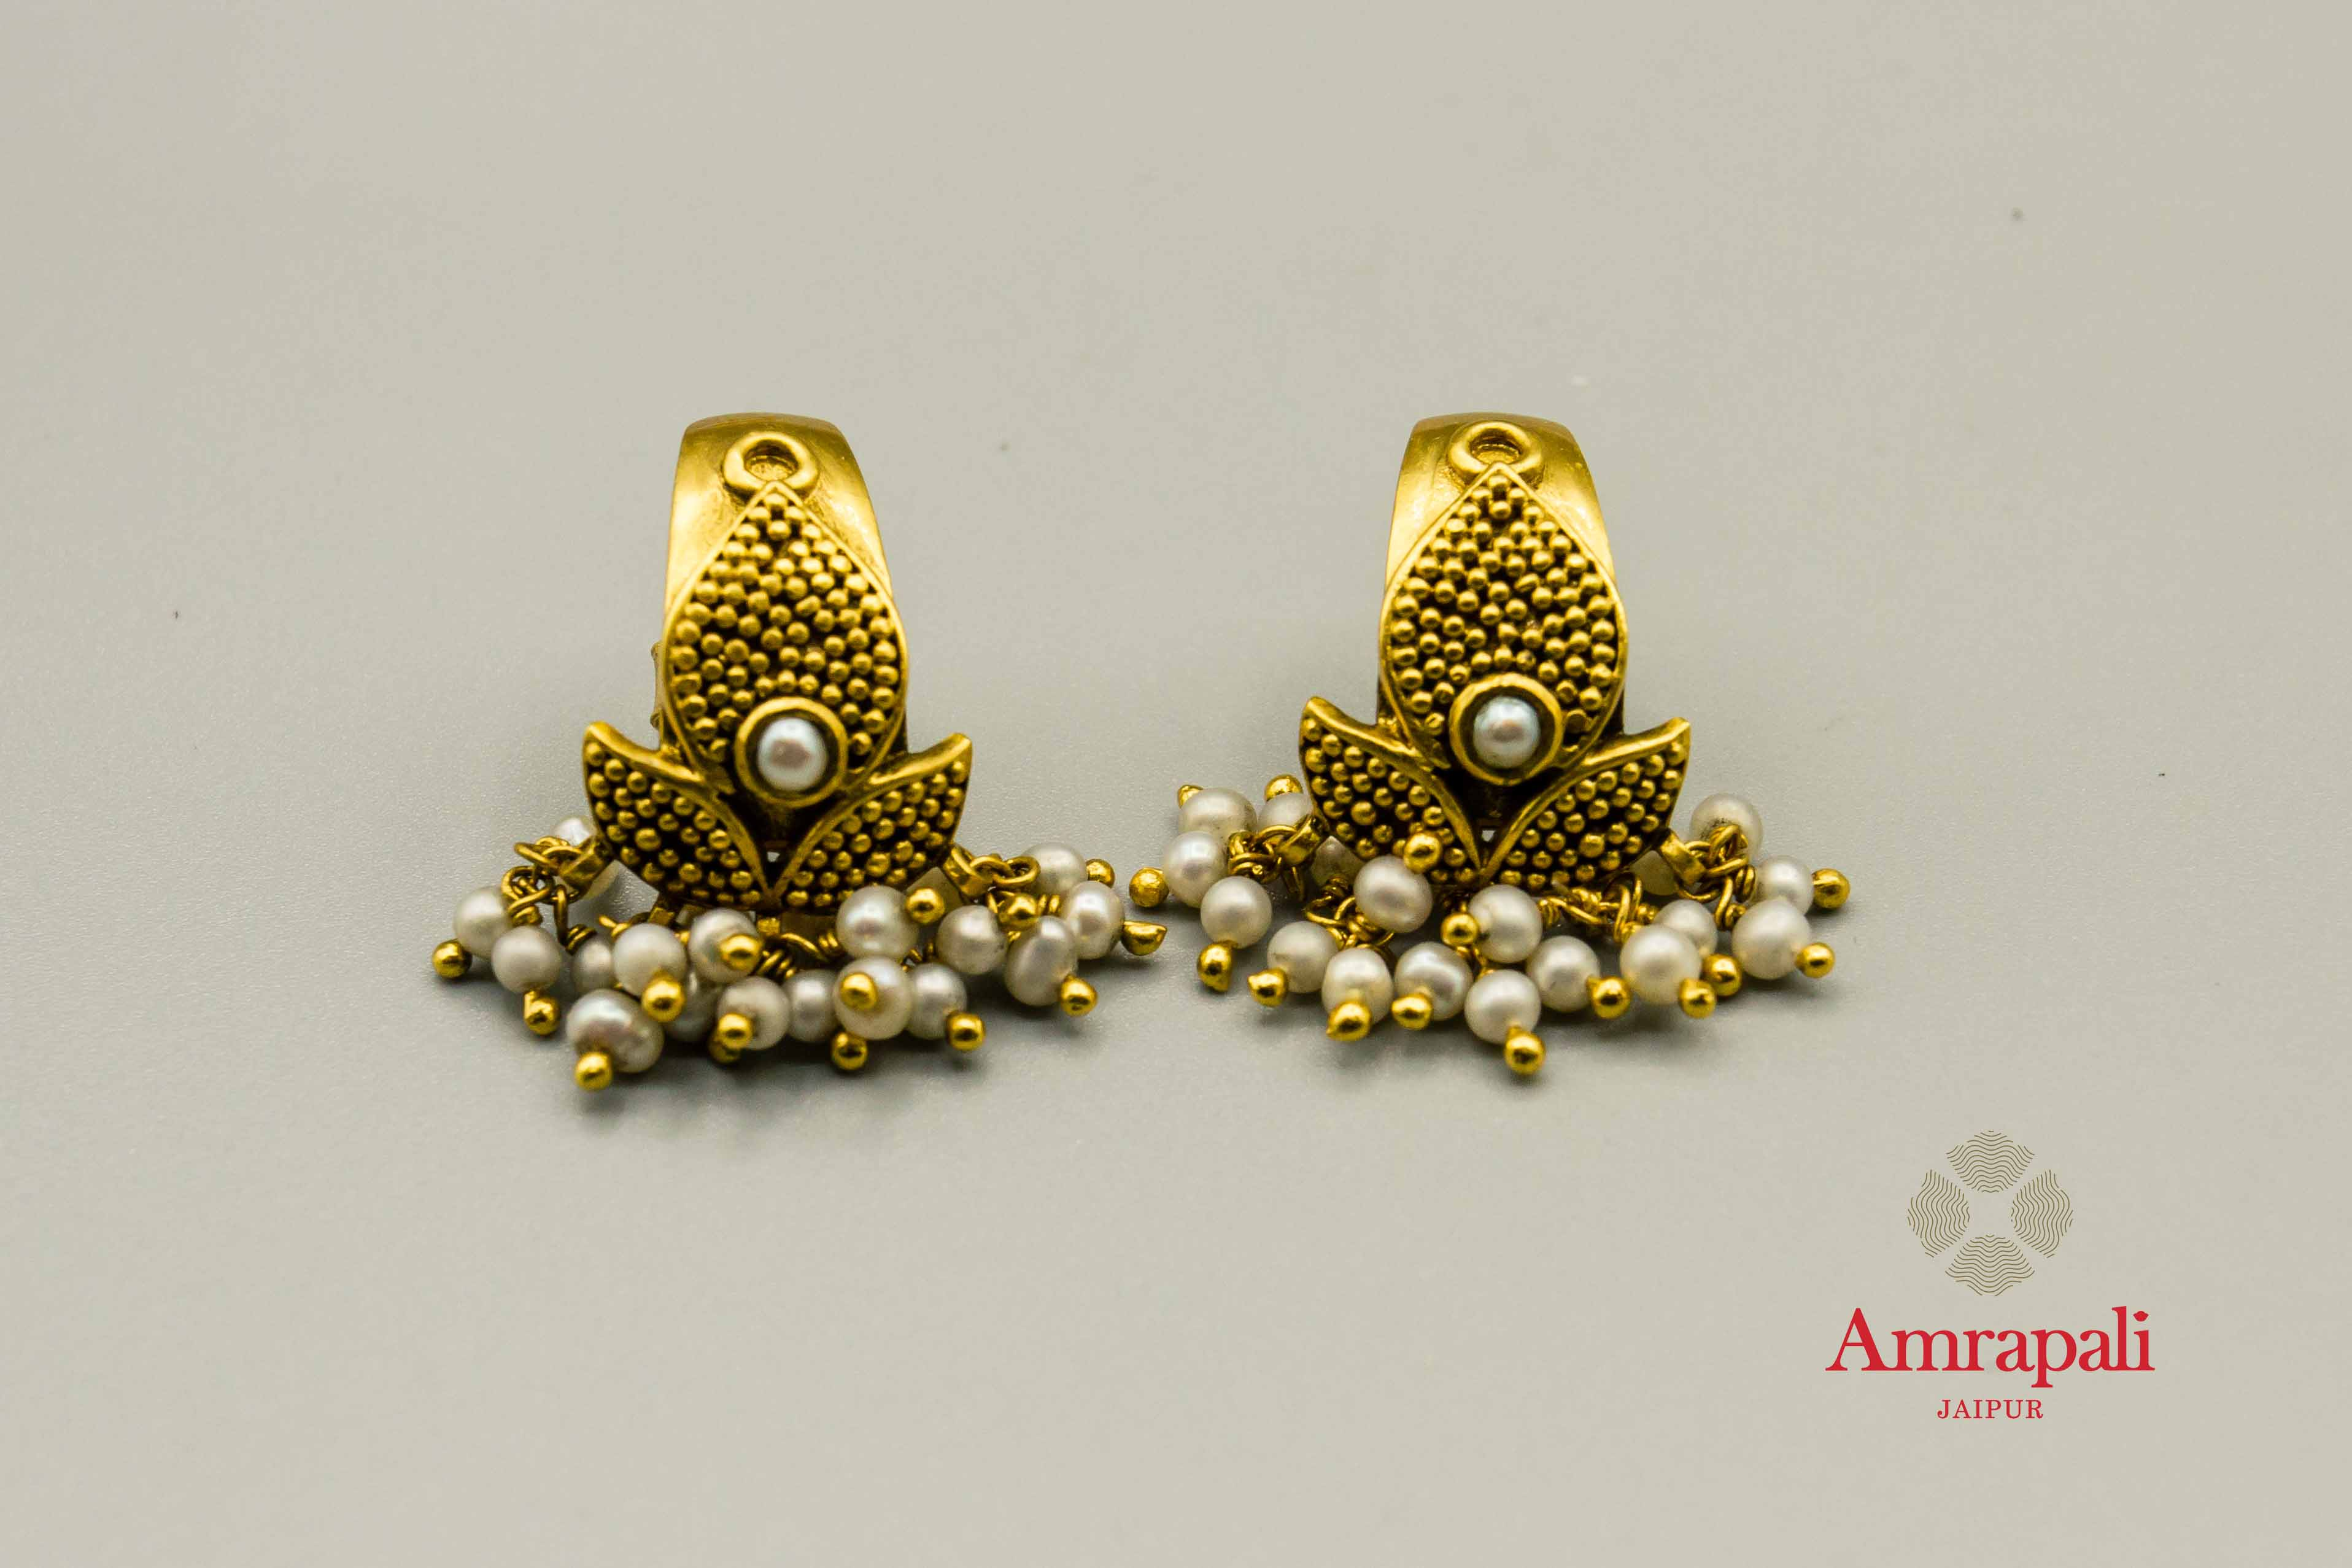 20C221 Silver Gold Plated Leaf Design Earrings with Pearls